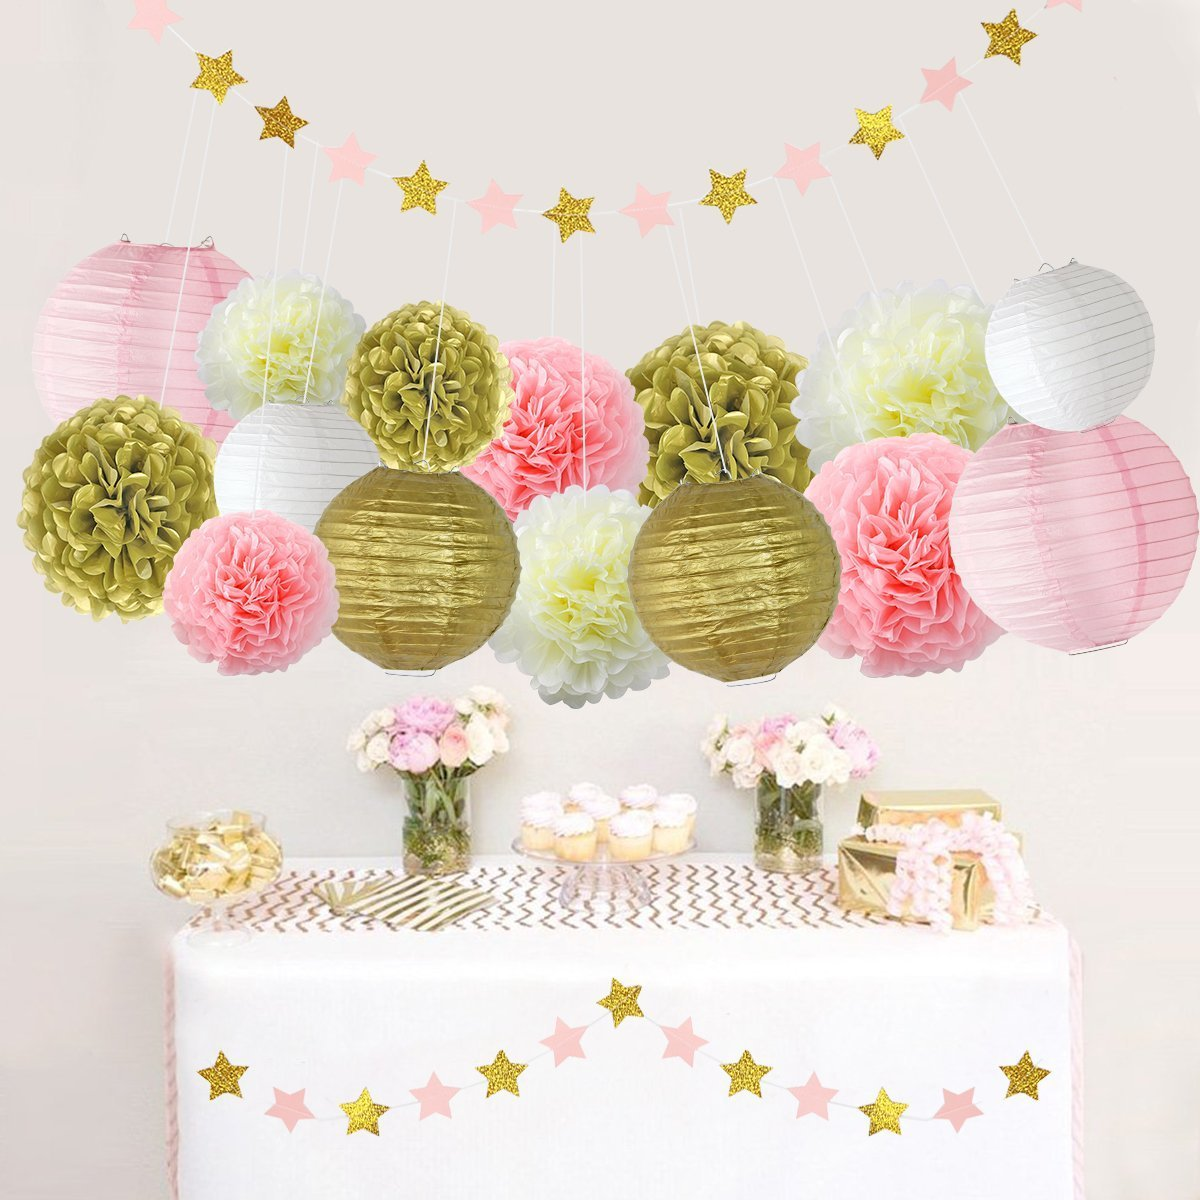 Amazon LITAUS Pink And Gold Birthday Party Decorations Tissue Pom Poms Paper Lantern Garland Star Hanging For